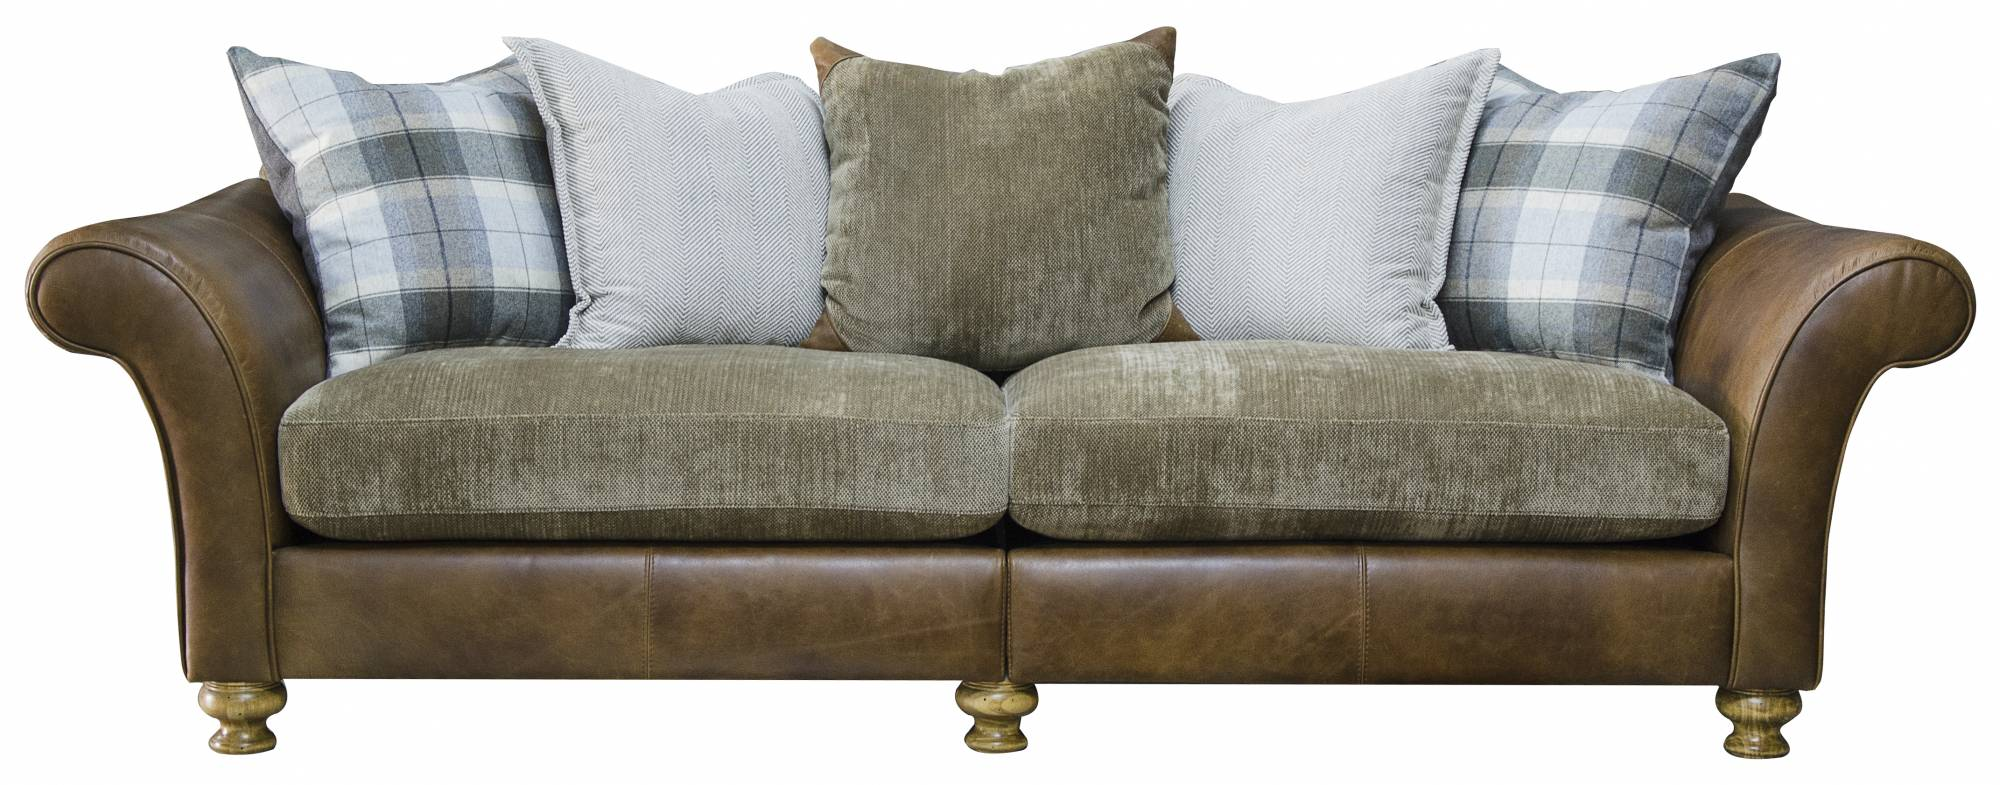 Highlander 4 Seater Leather Sofa Grade 1 Sofas